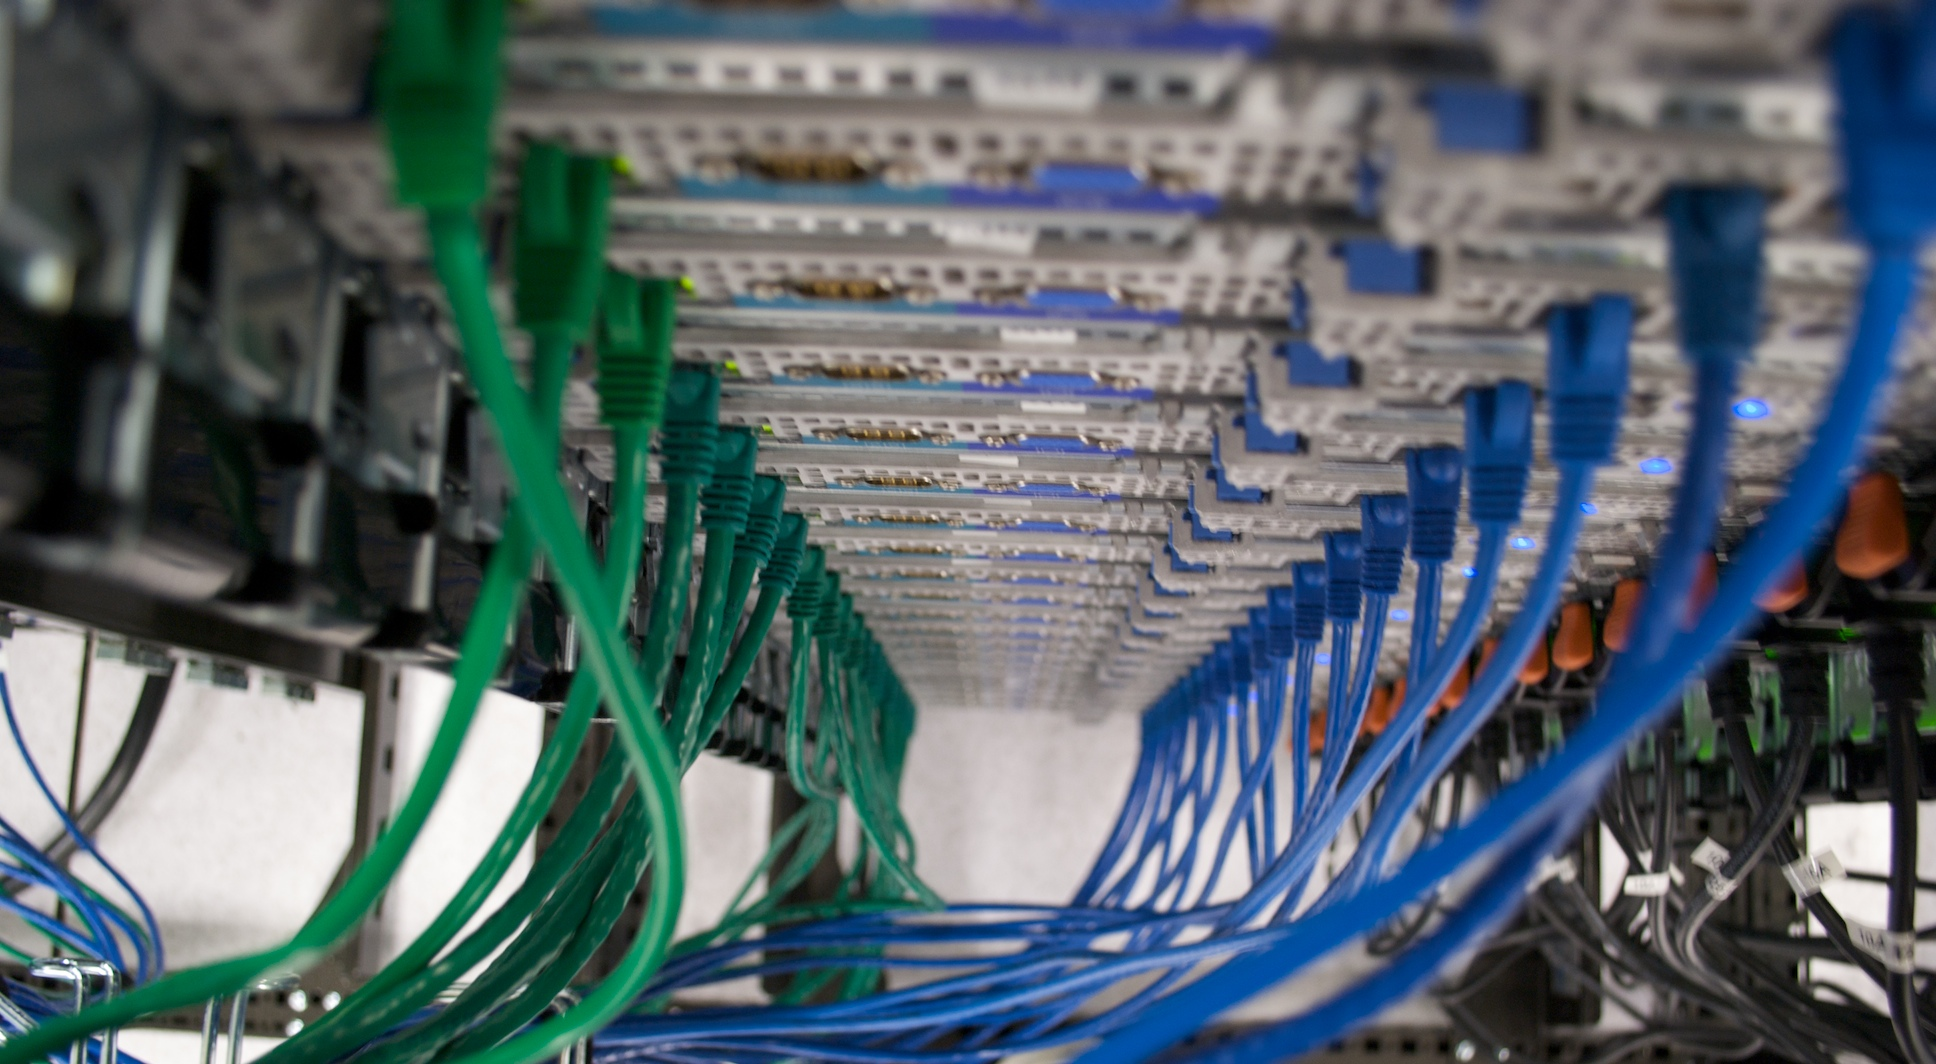 Network Cabling In Nj Monmouth Telecom Cable Internet Wiring Pcs And Servers